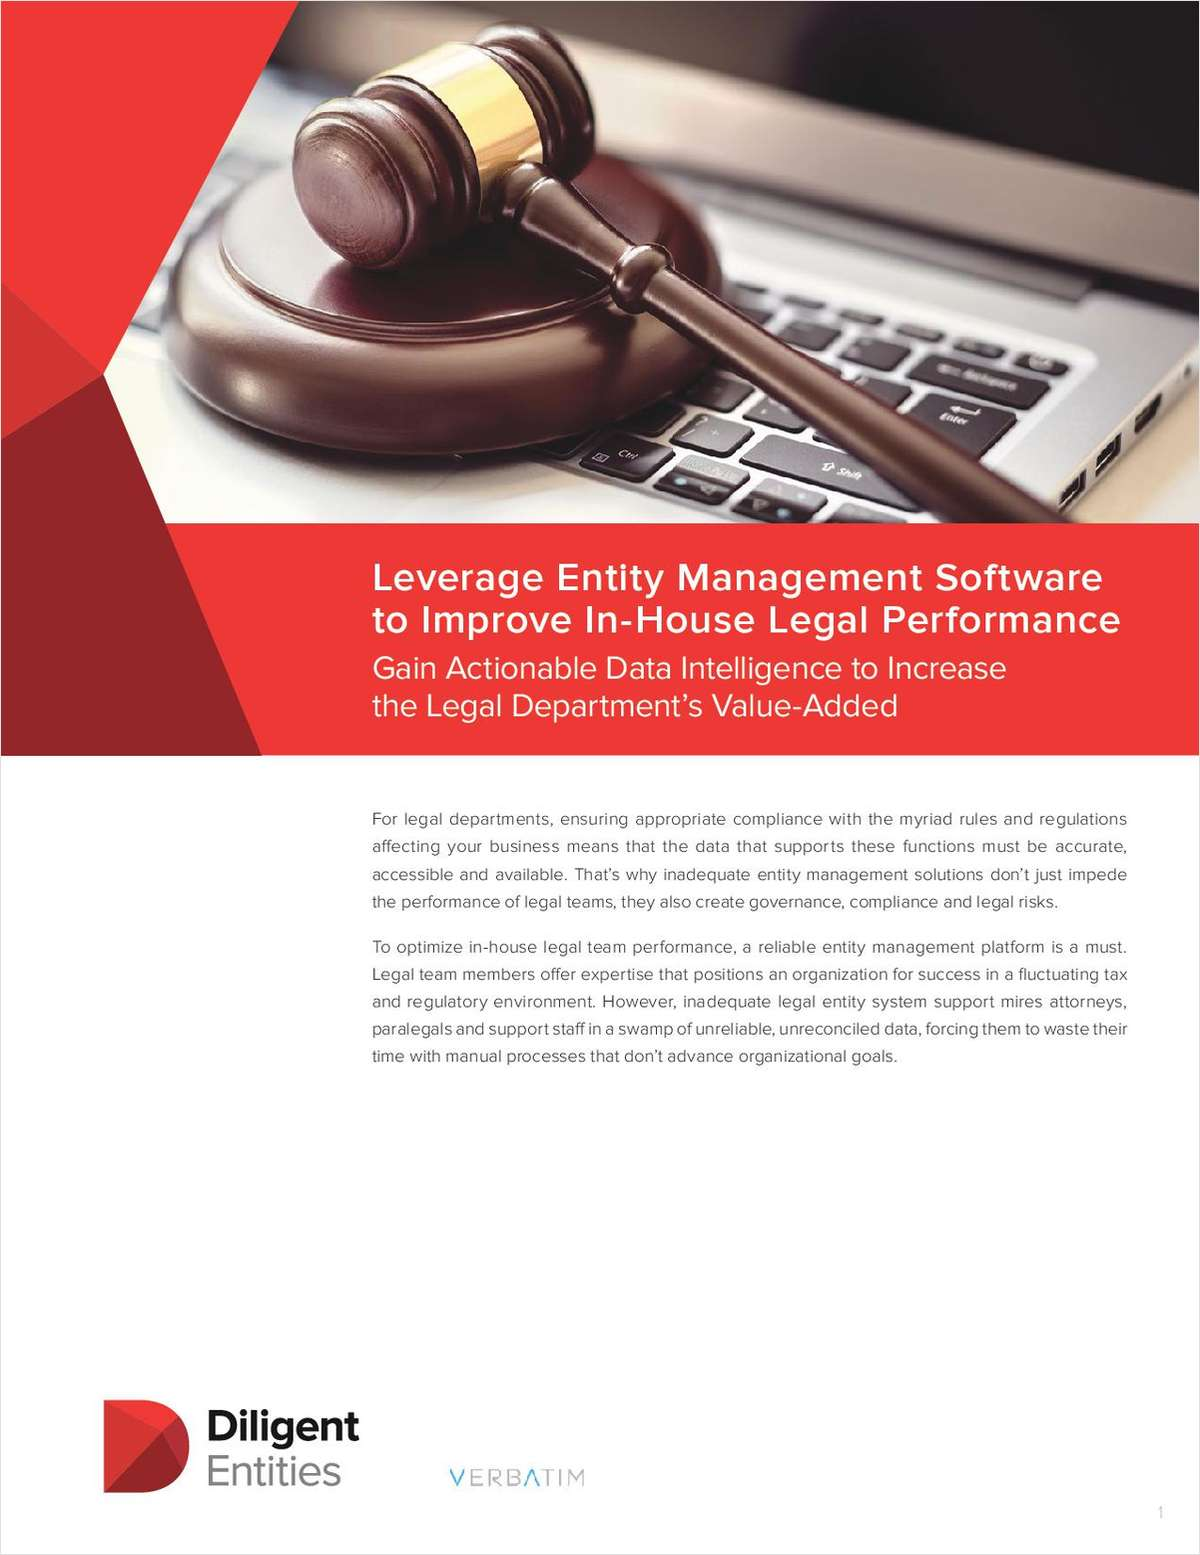 Leverage Entity Management Software to Improve In-House Legal Performance